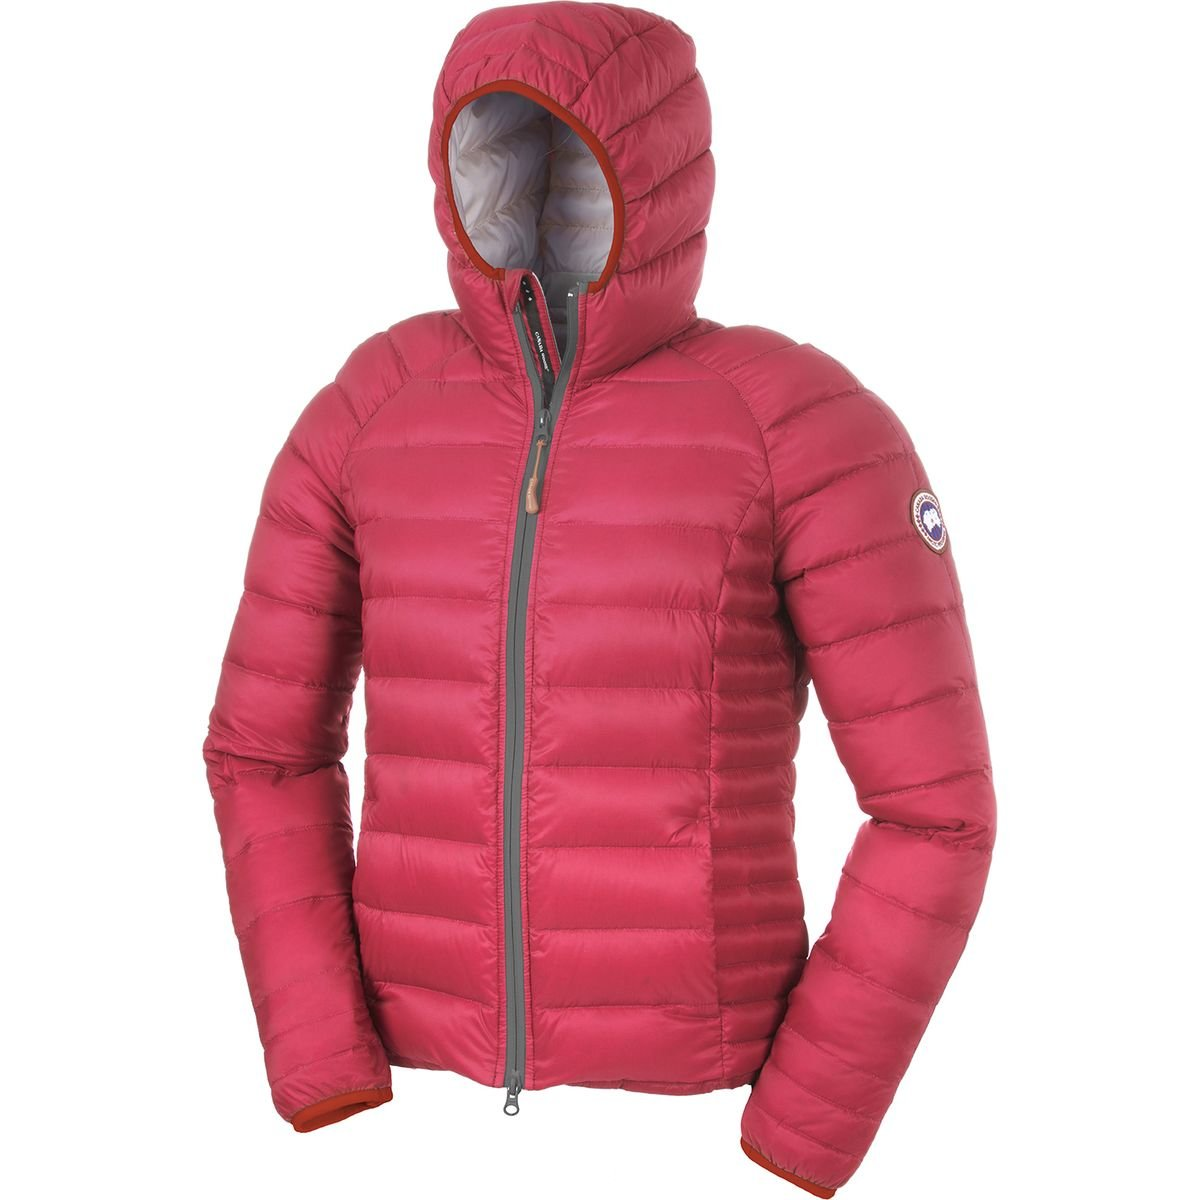 f3800ac4f32 Canada Goose Brookvale Hoody - Women's Torch Small: Amazon.ca ...